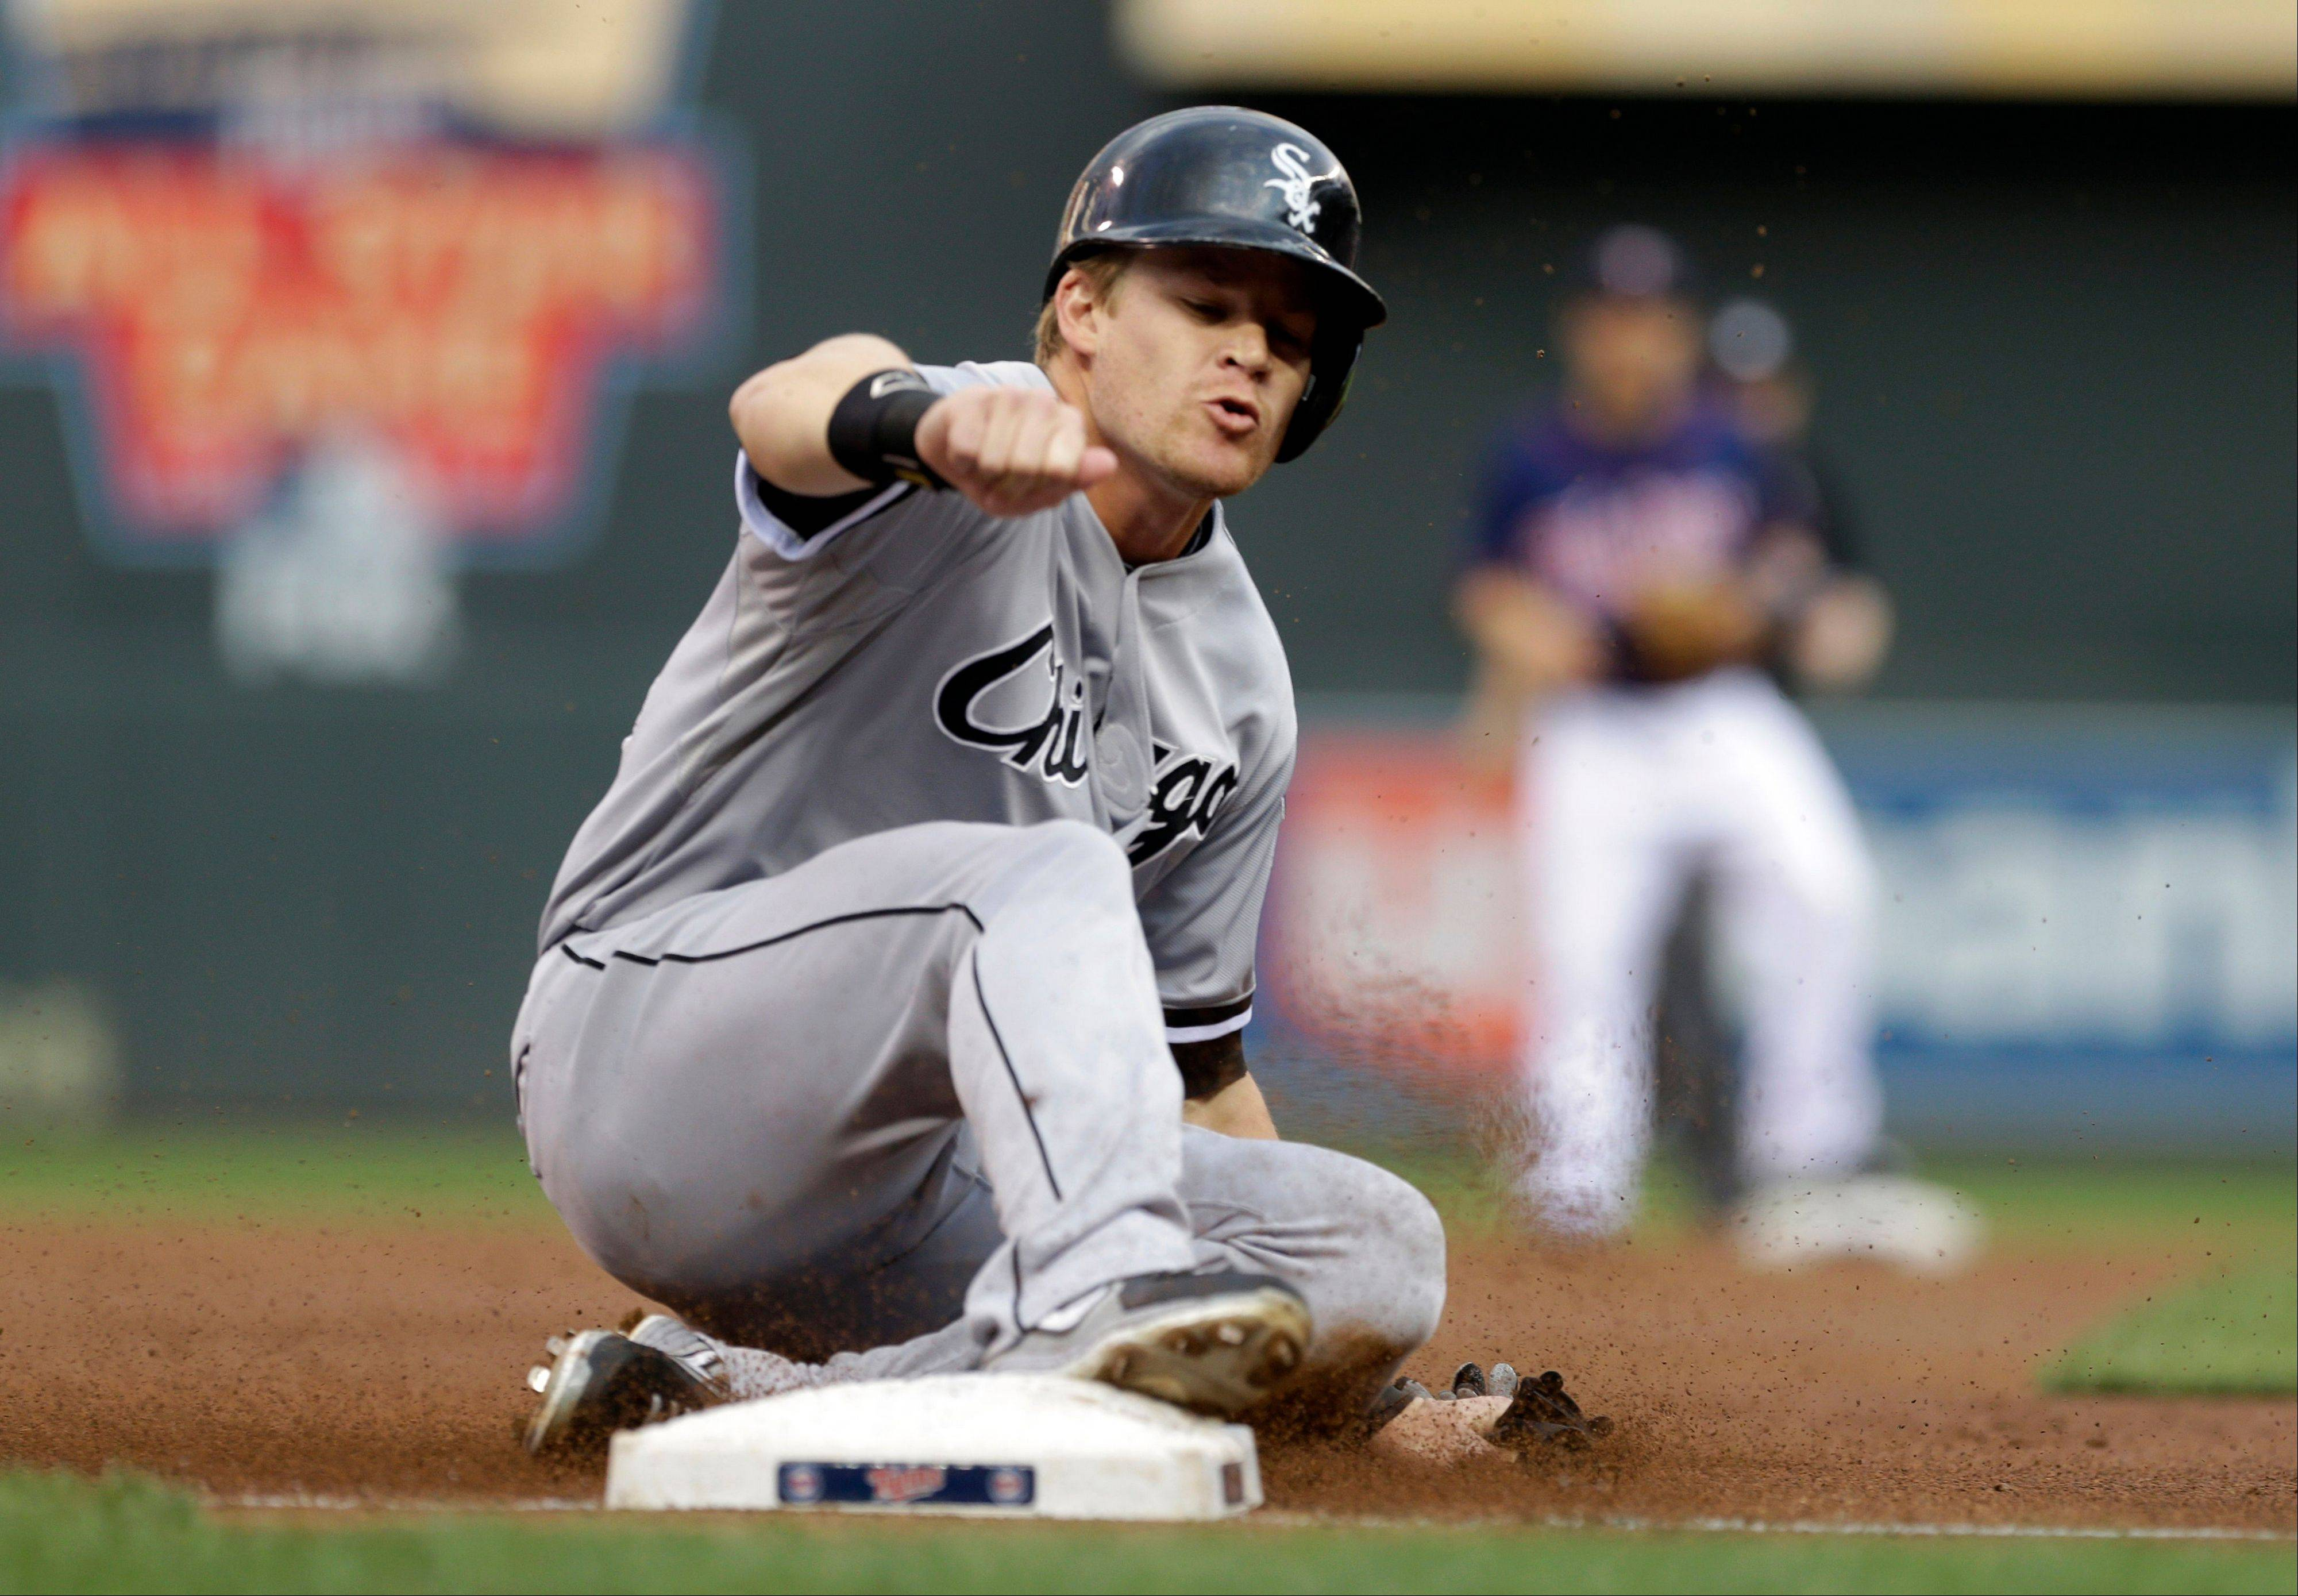 White Sox' Gordon Beckham advances to third on an RBI single by Adam Dunn off Minnesota Twins pitcher Mike Pelfrey in the first inning of the baseball game Thursday in Minneapolis.